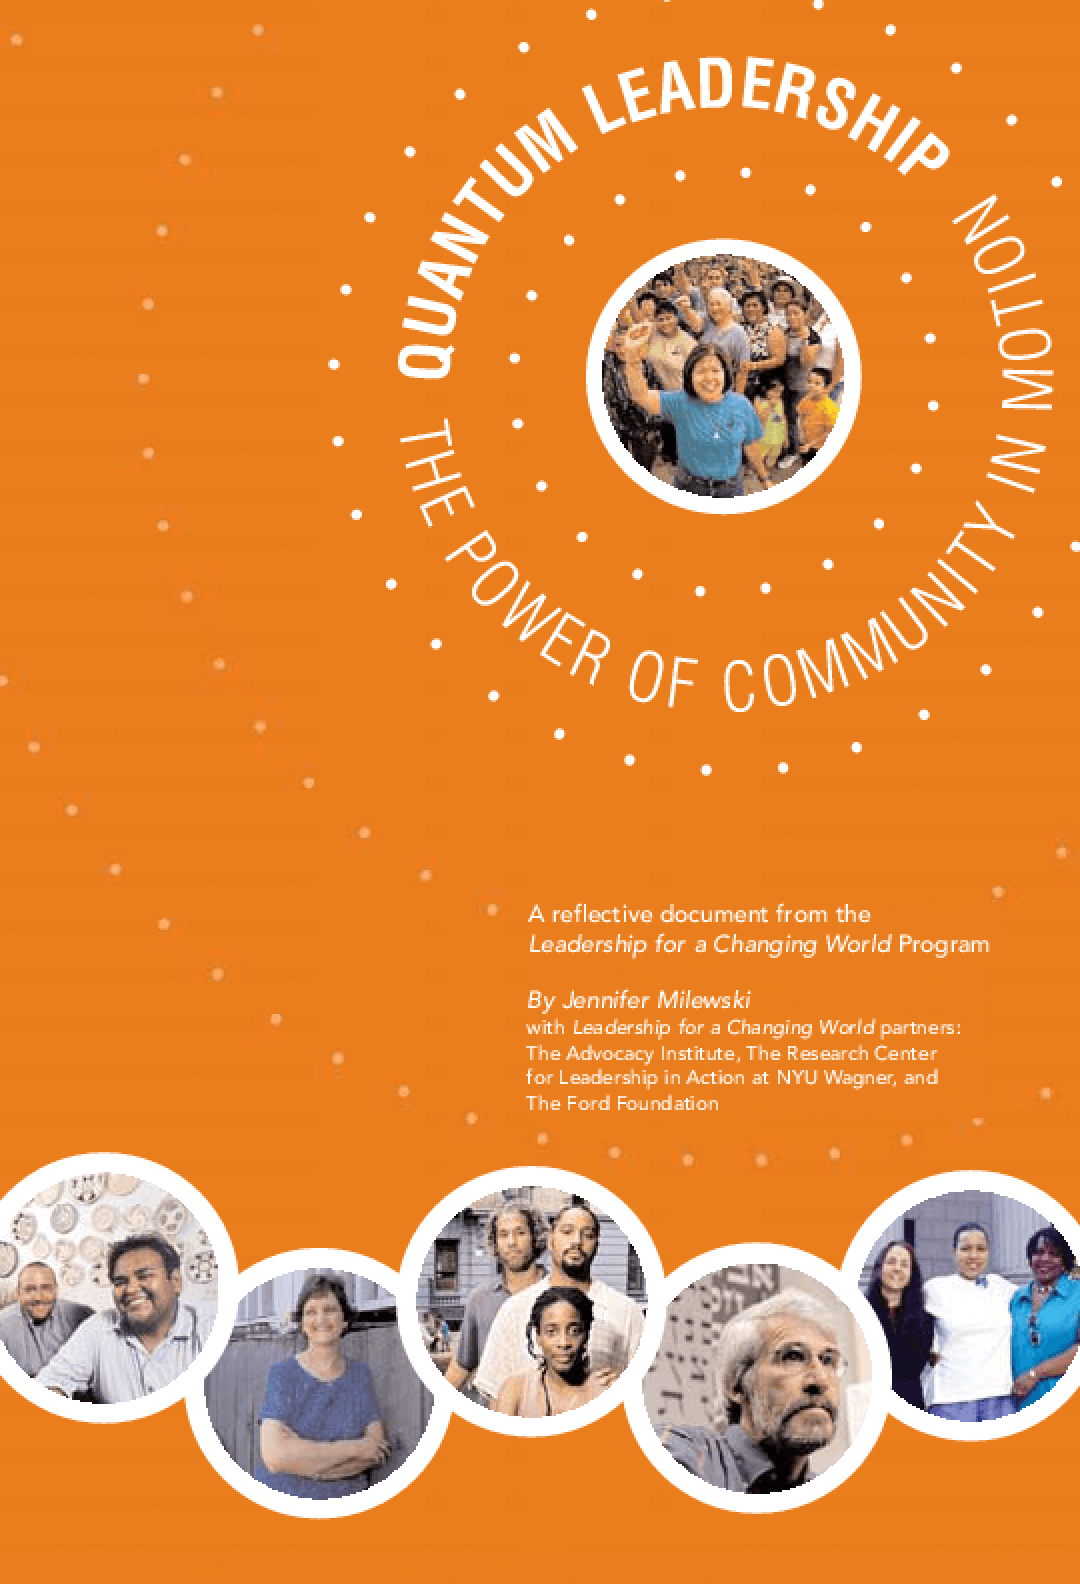 Quantum Leadership: The Power of Community in Motion